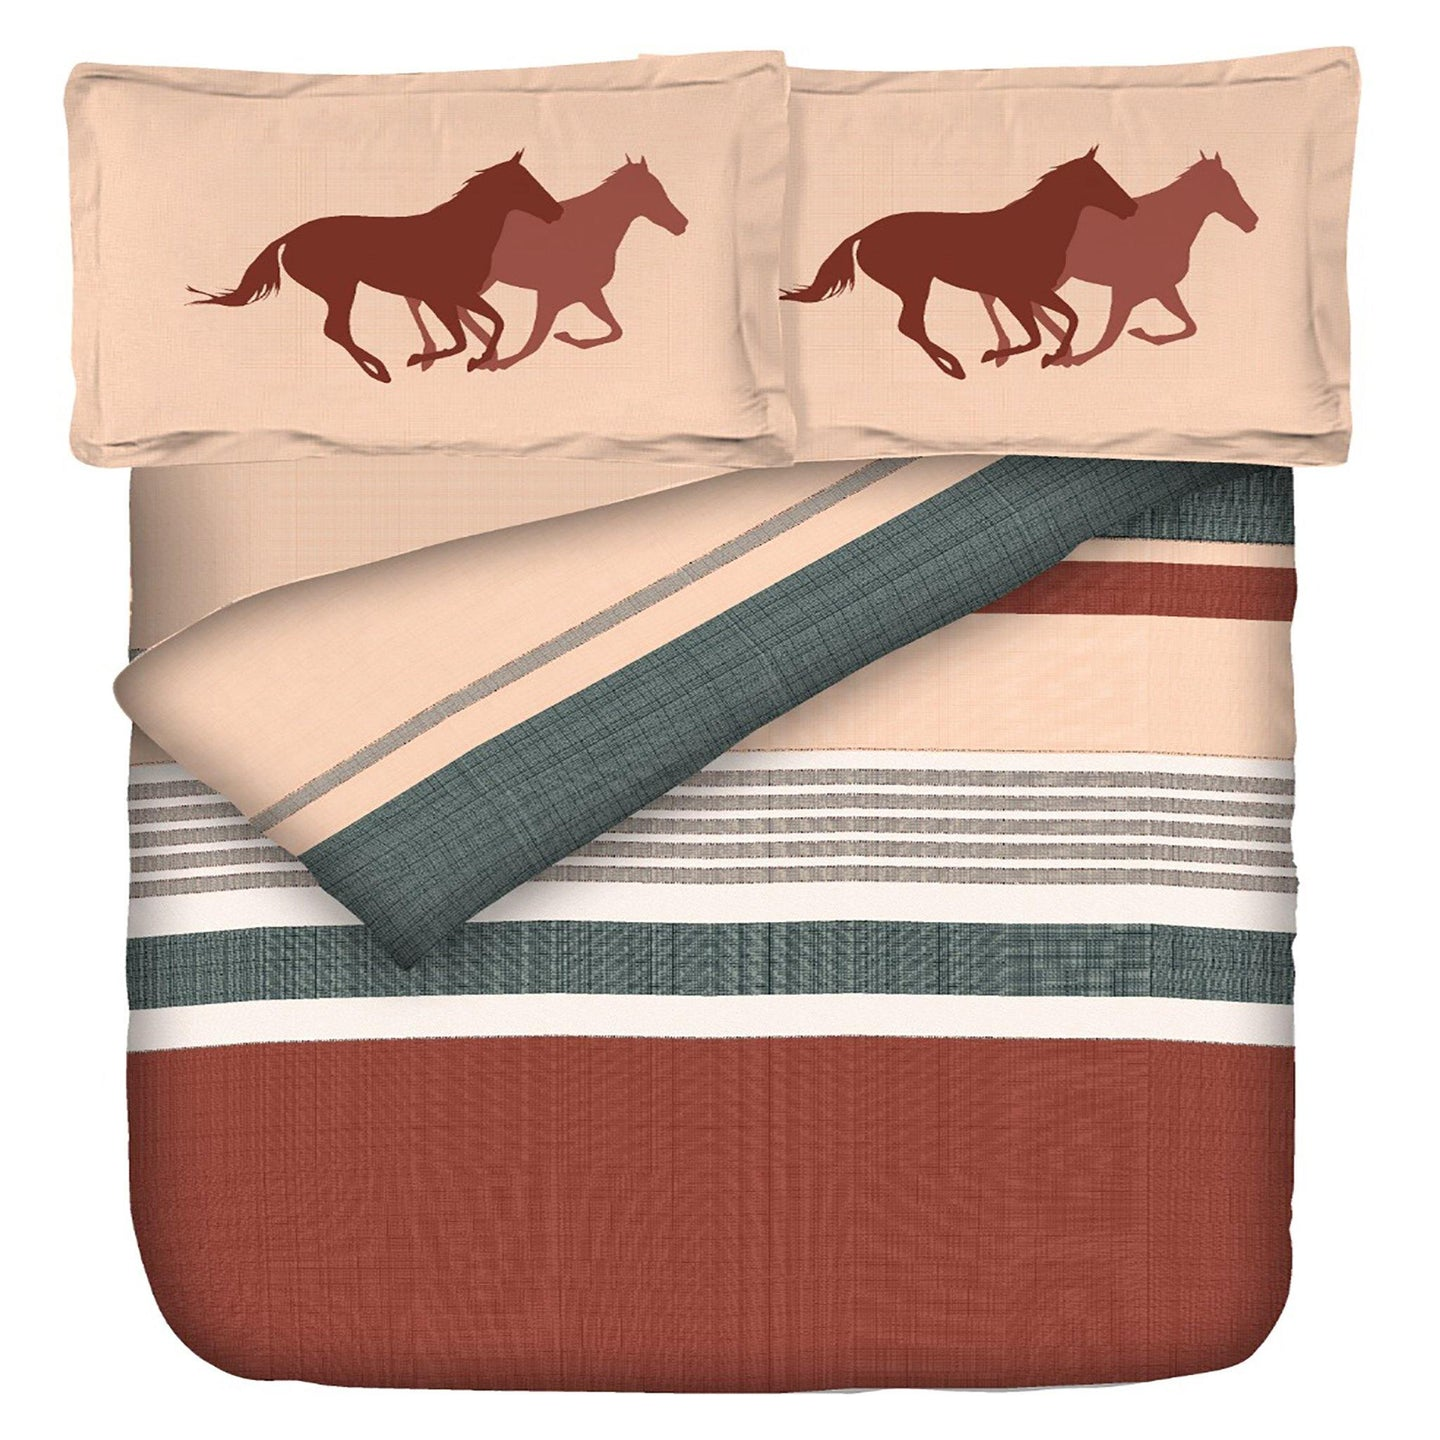 Aura Pony Horse Ride King Size Cotton Bed Sheet (108 x 120 inch) - SleepCosee